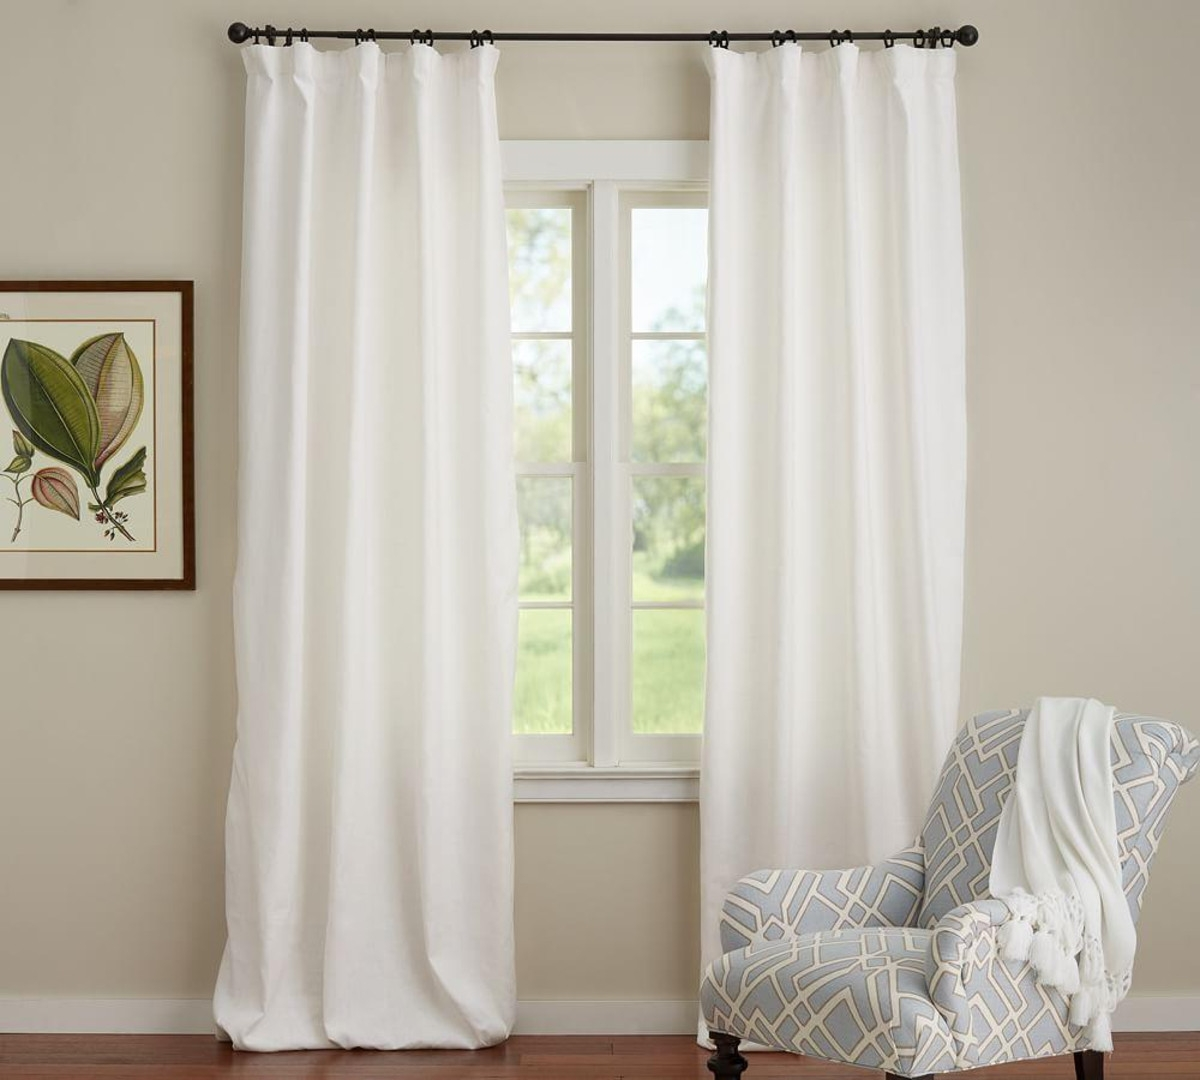 Linen Drapes Lined Business For Curtains Decoration With Regard To Lined Cotton Curtains (Image 11 of 15)